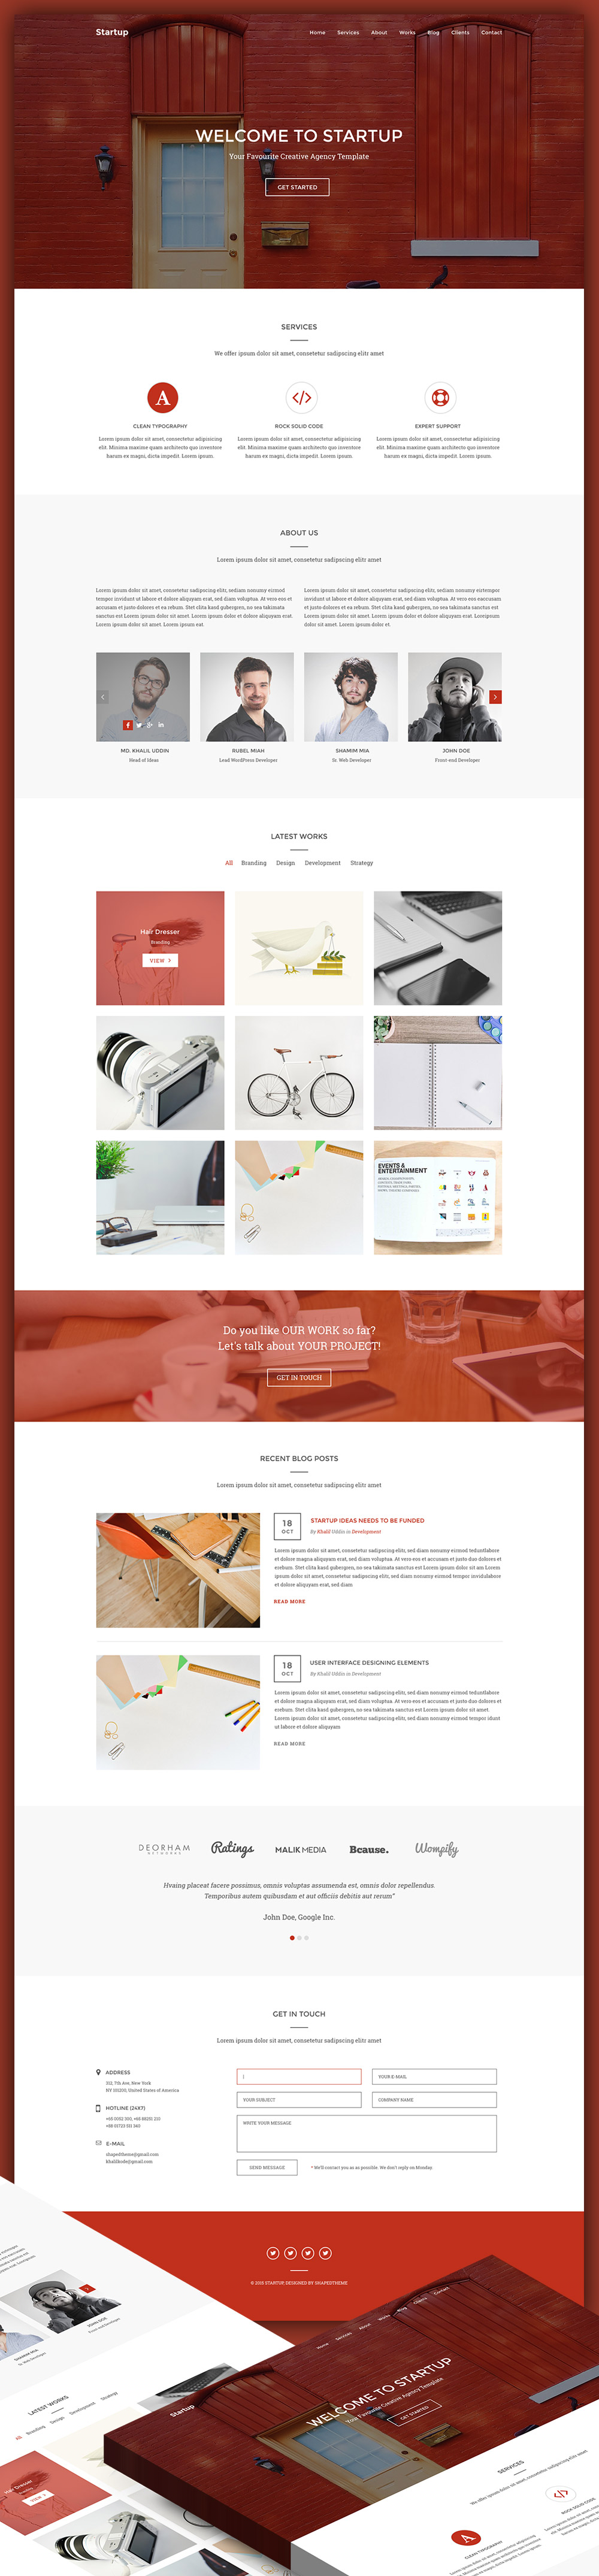 High Quality 50+ Free Corporate And Business Web Templates PSD www, Work, Website Template, Website Layout, Website, webpage, webdesign, Web Template, Web Resources, web page, Web Layout, Web Interface, Web Elements, Web Design, Web, UX, User Interface, unique, UI, traveler, Travel, top psd, Theme, Template, team, Stylish, startup, site, Single Page, Simple, Showcase, Services, Resources, reach us, Quality, psdfreebies, Psd Templates, PSD template, PSD Sources, PSD Set, psd resources, psd kit, PSD images, psd free download, psd free, PSD file, psd download, psd collection, PSD, Professional, Premium, Portfolio, Photoshop, pack, original, onepage, one page, official, Office, offer, new, Modern Multipurpose, Modern, Mockup, Mobile Application, mobile app website, Mobile App, Layered PSDs, Layered PSD, Landing Page, homepage template, Homepage, high quality, grid, Graphics, Fresh, Freebies, Freebie, Free Template, Free Resources, Free PSD Template, Free PSD, free download, Free, flat style, Flat, Exclusive, Elements, download psd, download free psd, Download, detailed, Design, Creative, Corporate, company, collection, Clean, business templates, Business, Brand, bootstrap, Black, best psd, best collection, application landing page, Application, App Website, app mockup, app landing page, App, Adobe Photoshop,